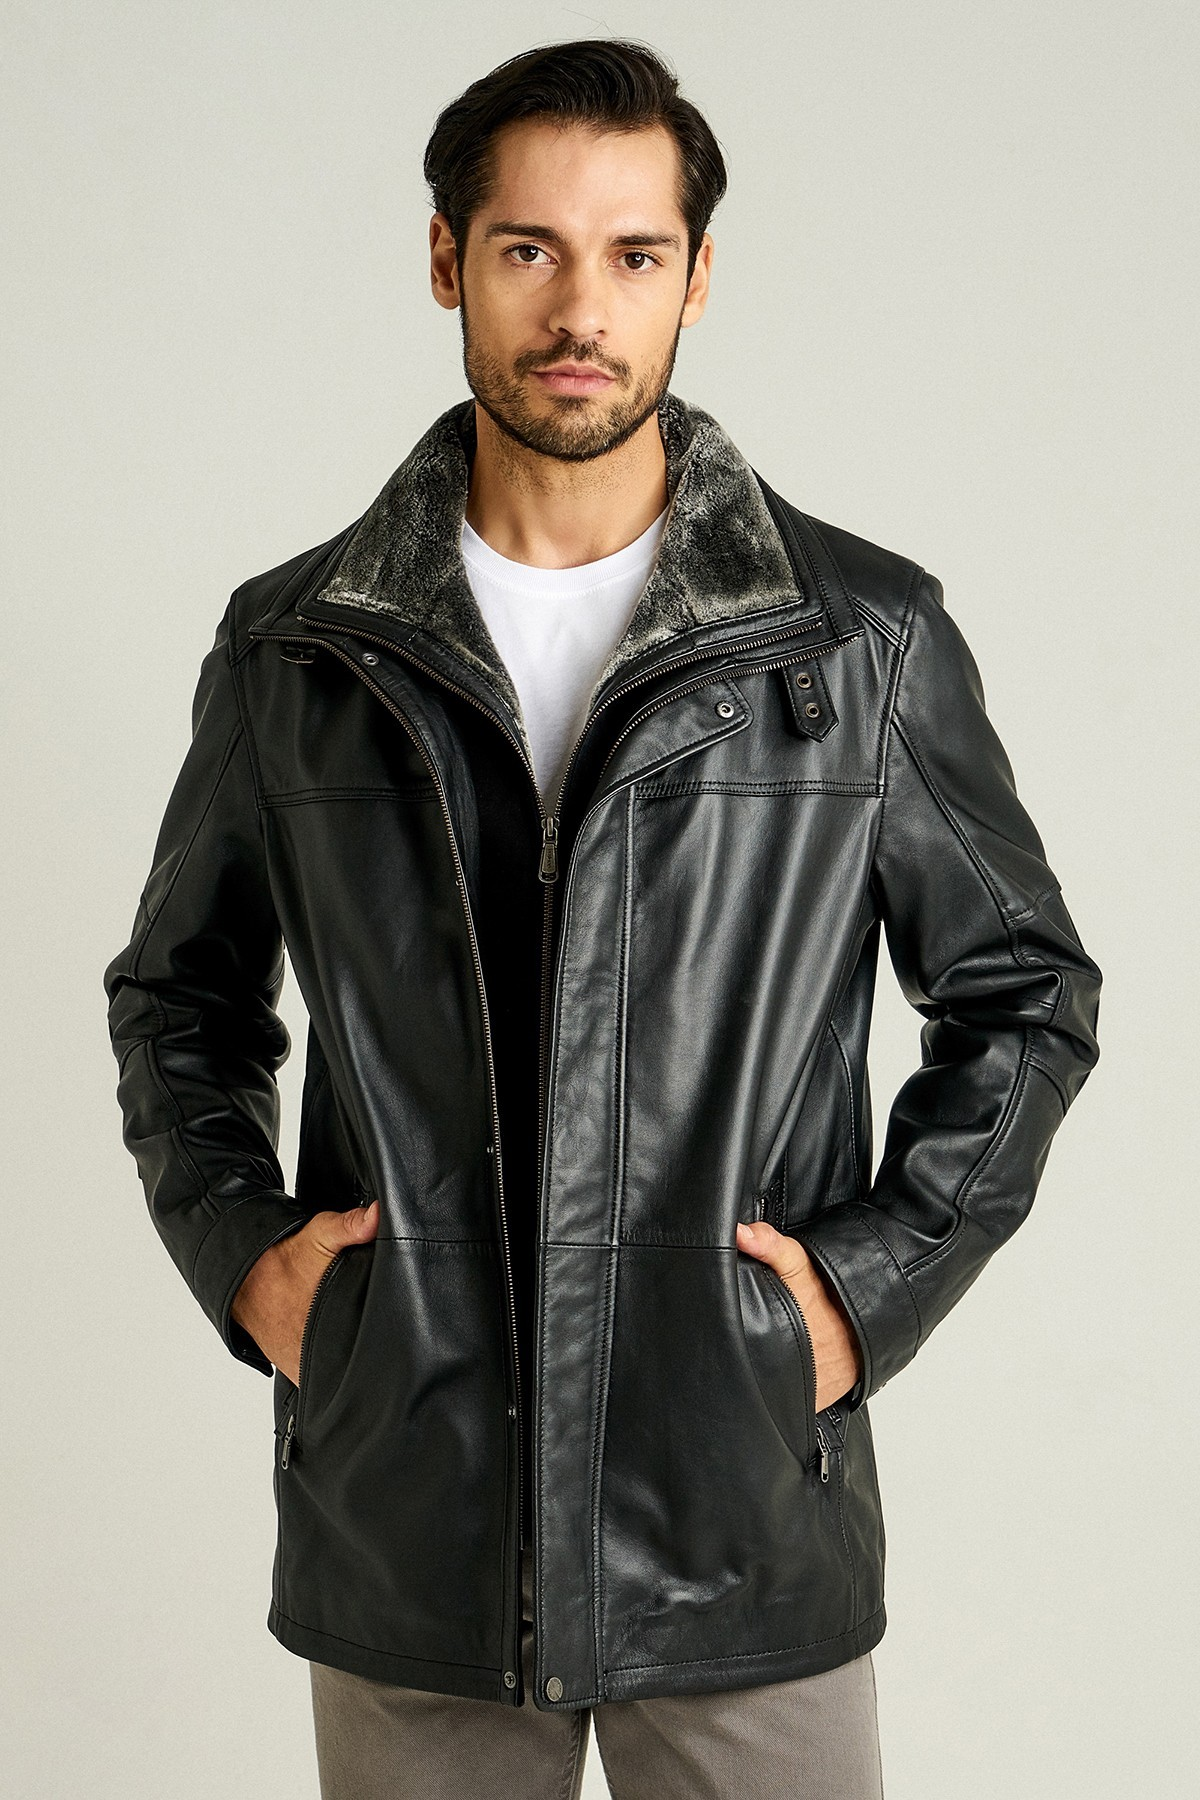 Mens Leather Jacket With Fur Inside